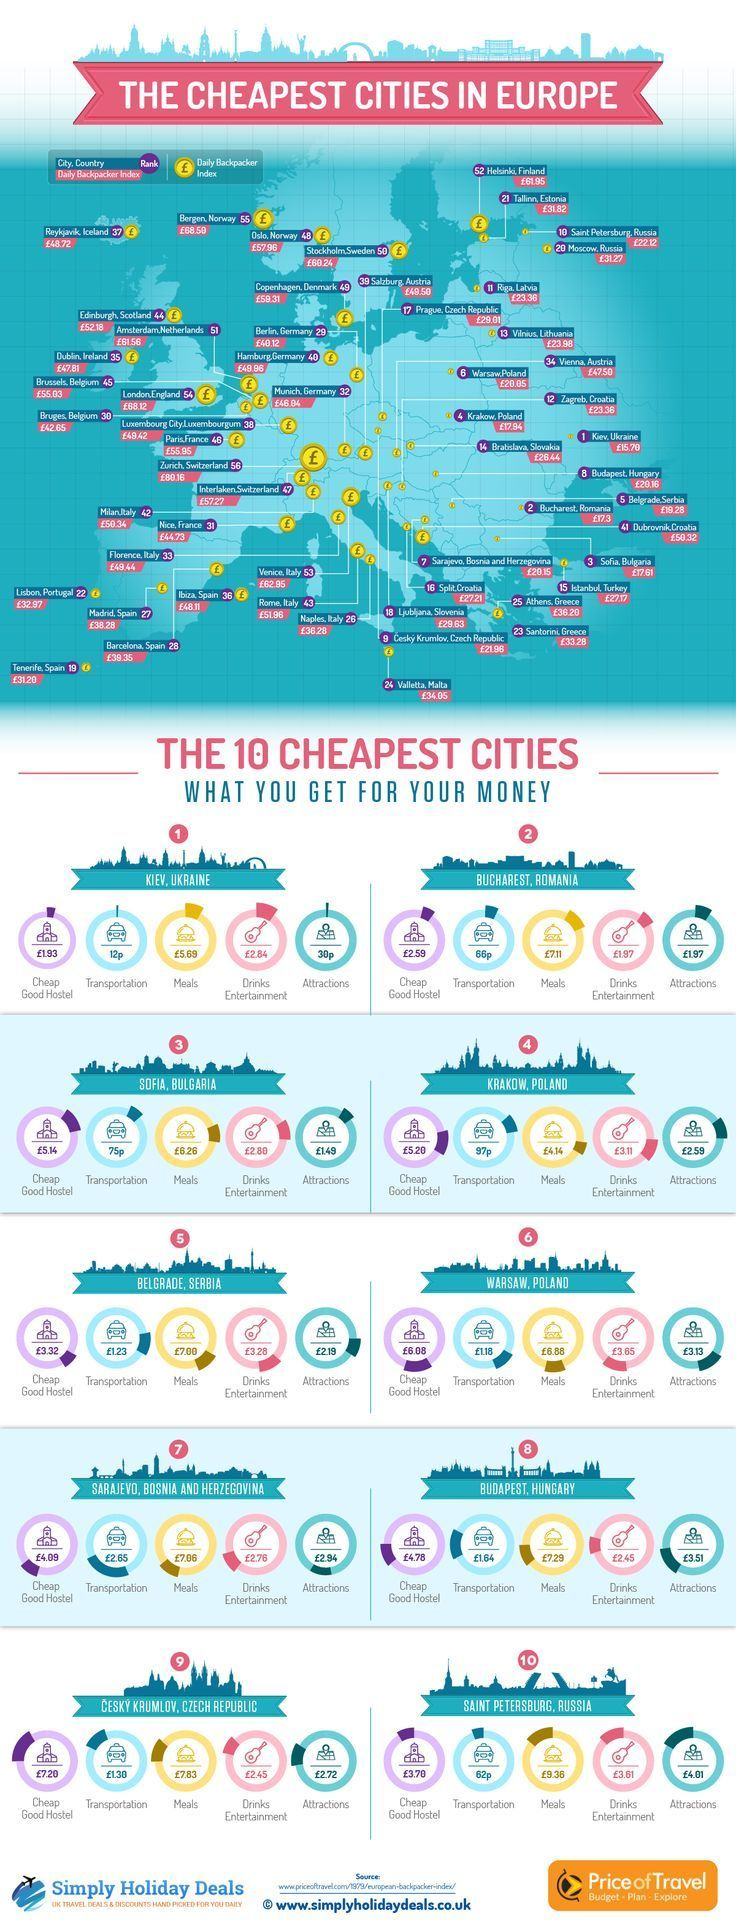 Best Travel Cheat Sheets Images On Pinterest Travel Travel - 7 tips to avoid tourist scams in europe